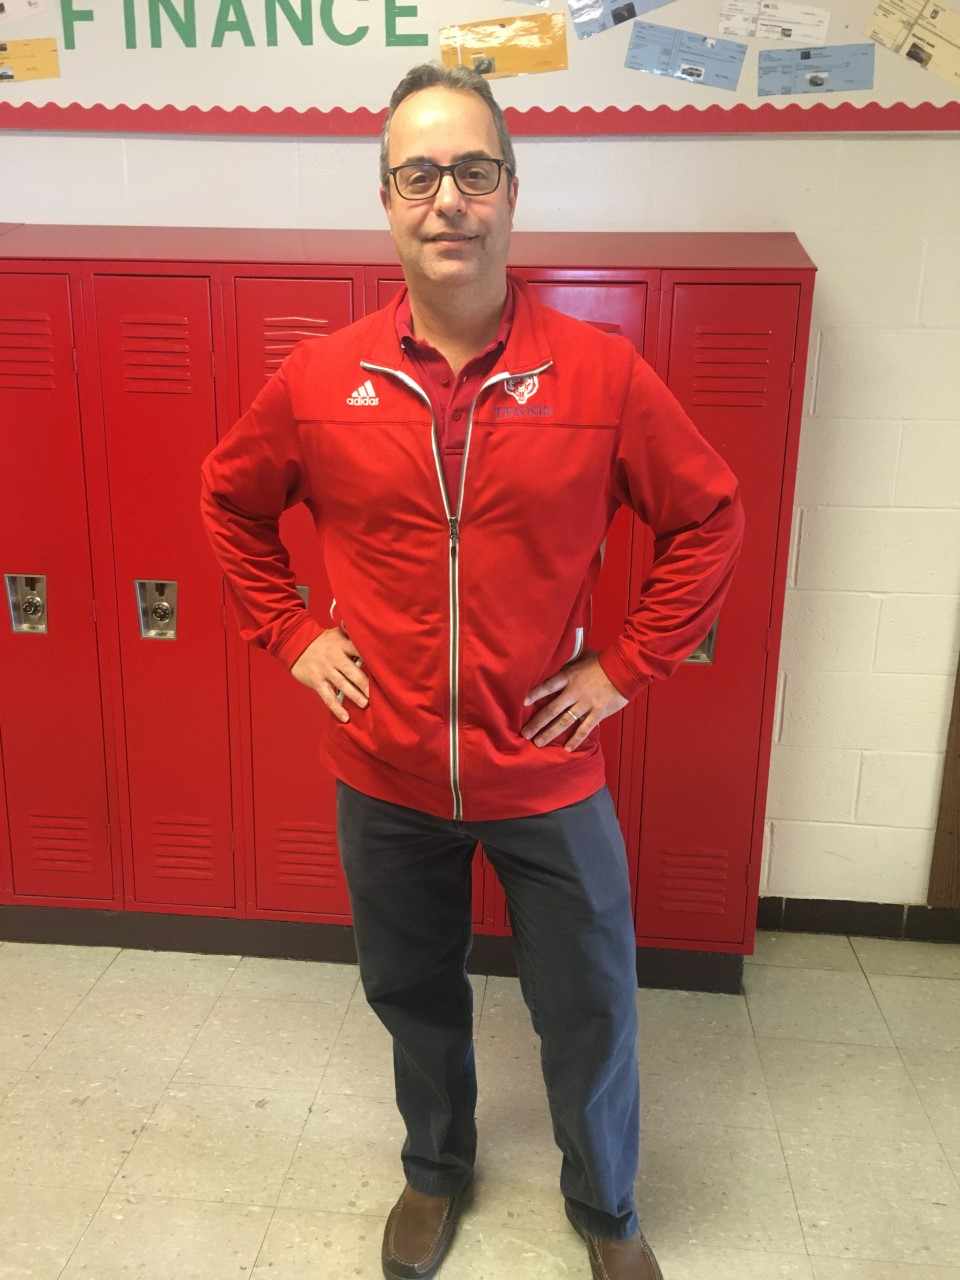 Mr. Rego (picture taken by: Abby Templeman)